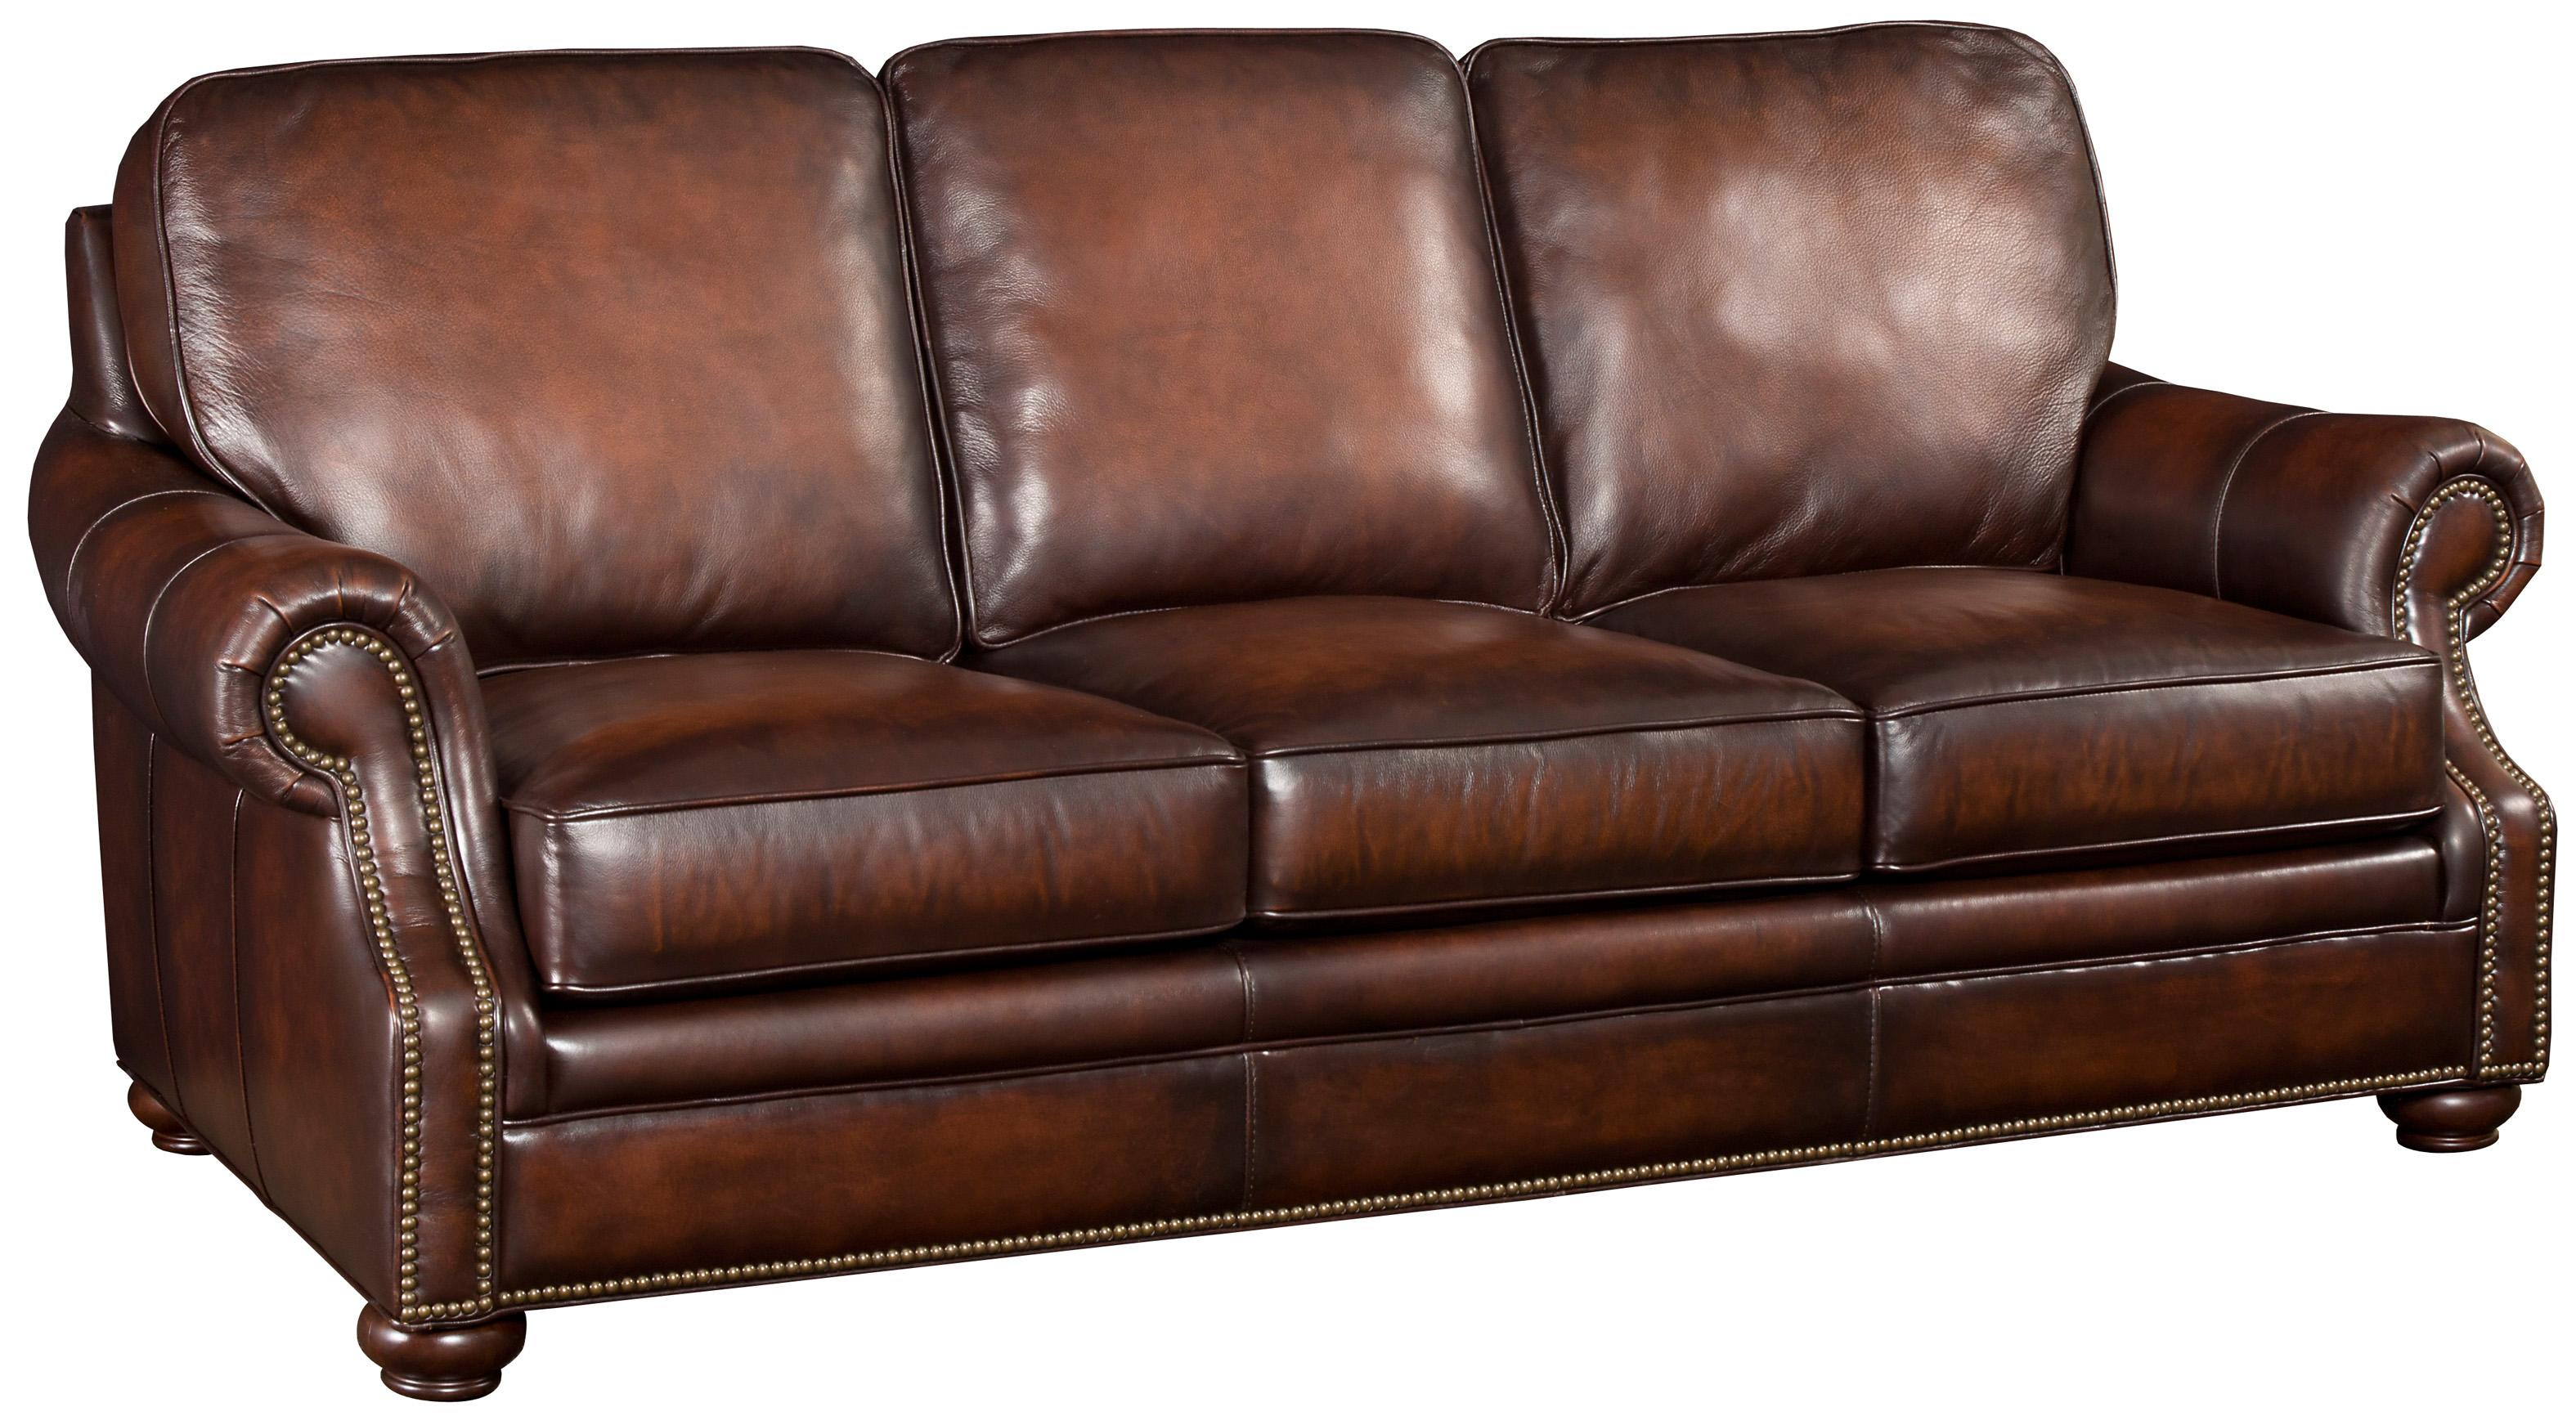 Hooker Furniture SS185 Brown Leather Sofa with Wood